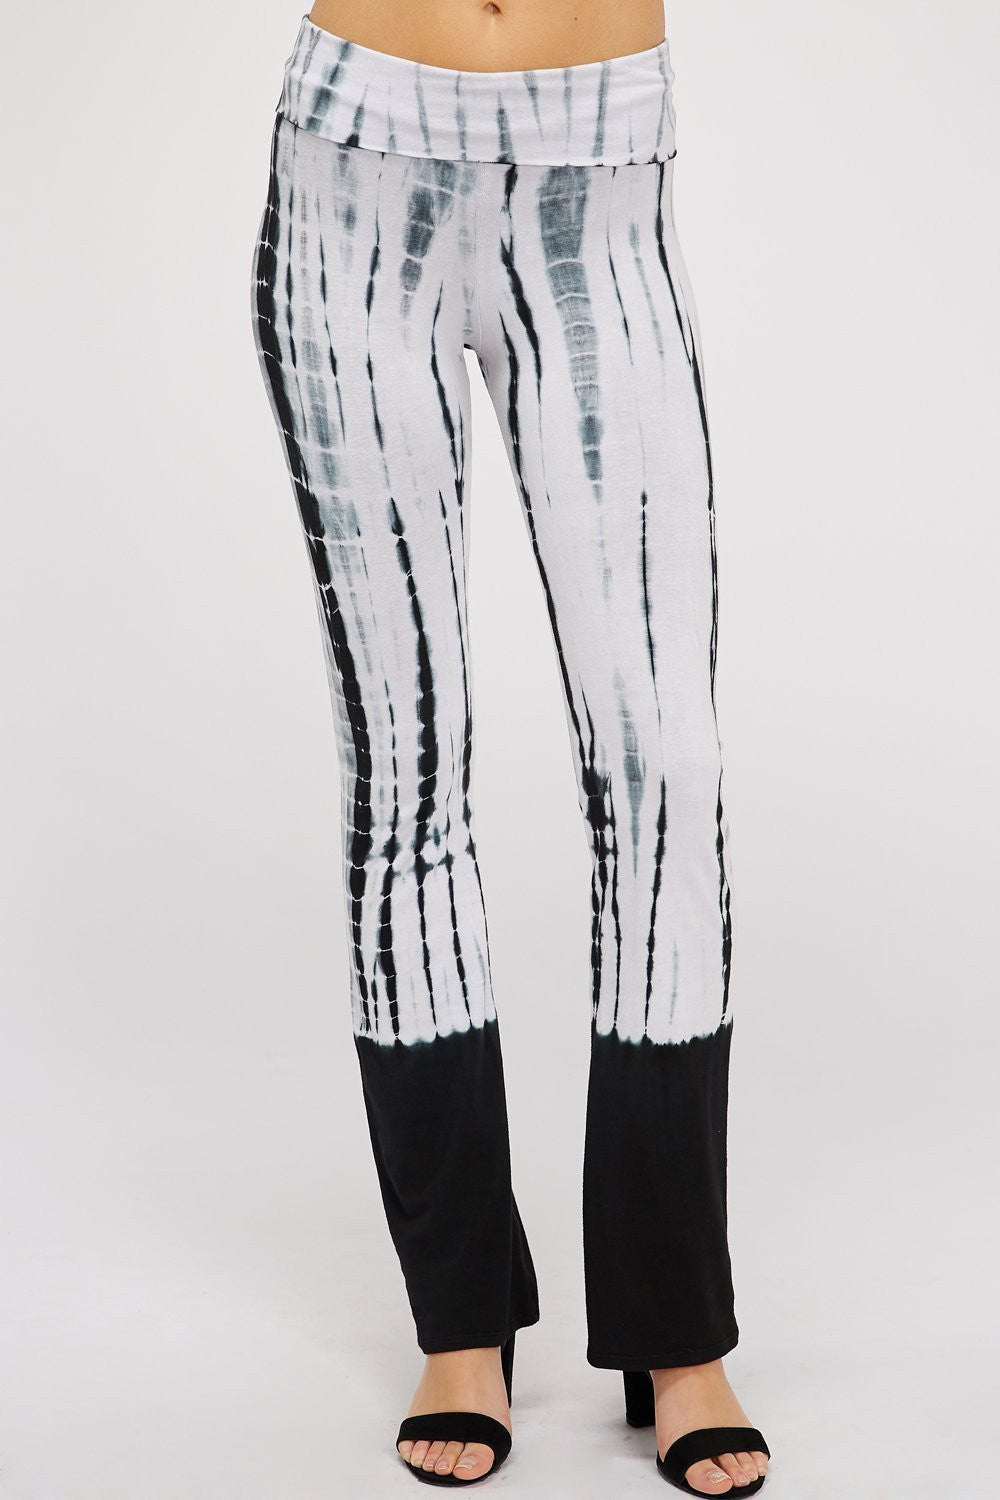 Wholesale Clothing, Online Wholesale Clothing, Women Clothing, Bohemian, Free People, tiedye, specialty wash, wholesale seller, wholesale women clothing shop, gypsy look, USA made, URBAN X APPAREL-PANTS-UPC3009BW, fashiontrend2019